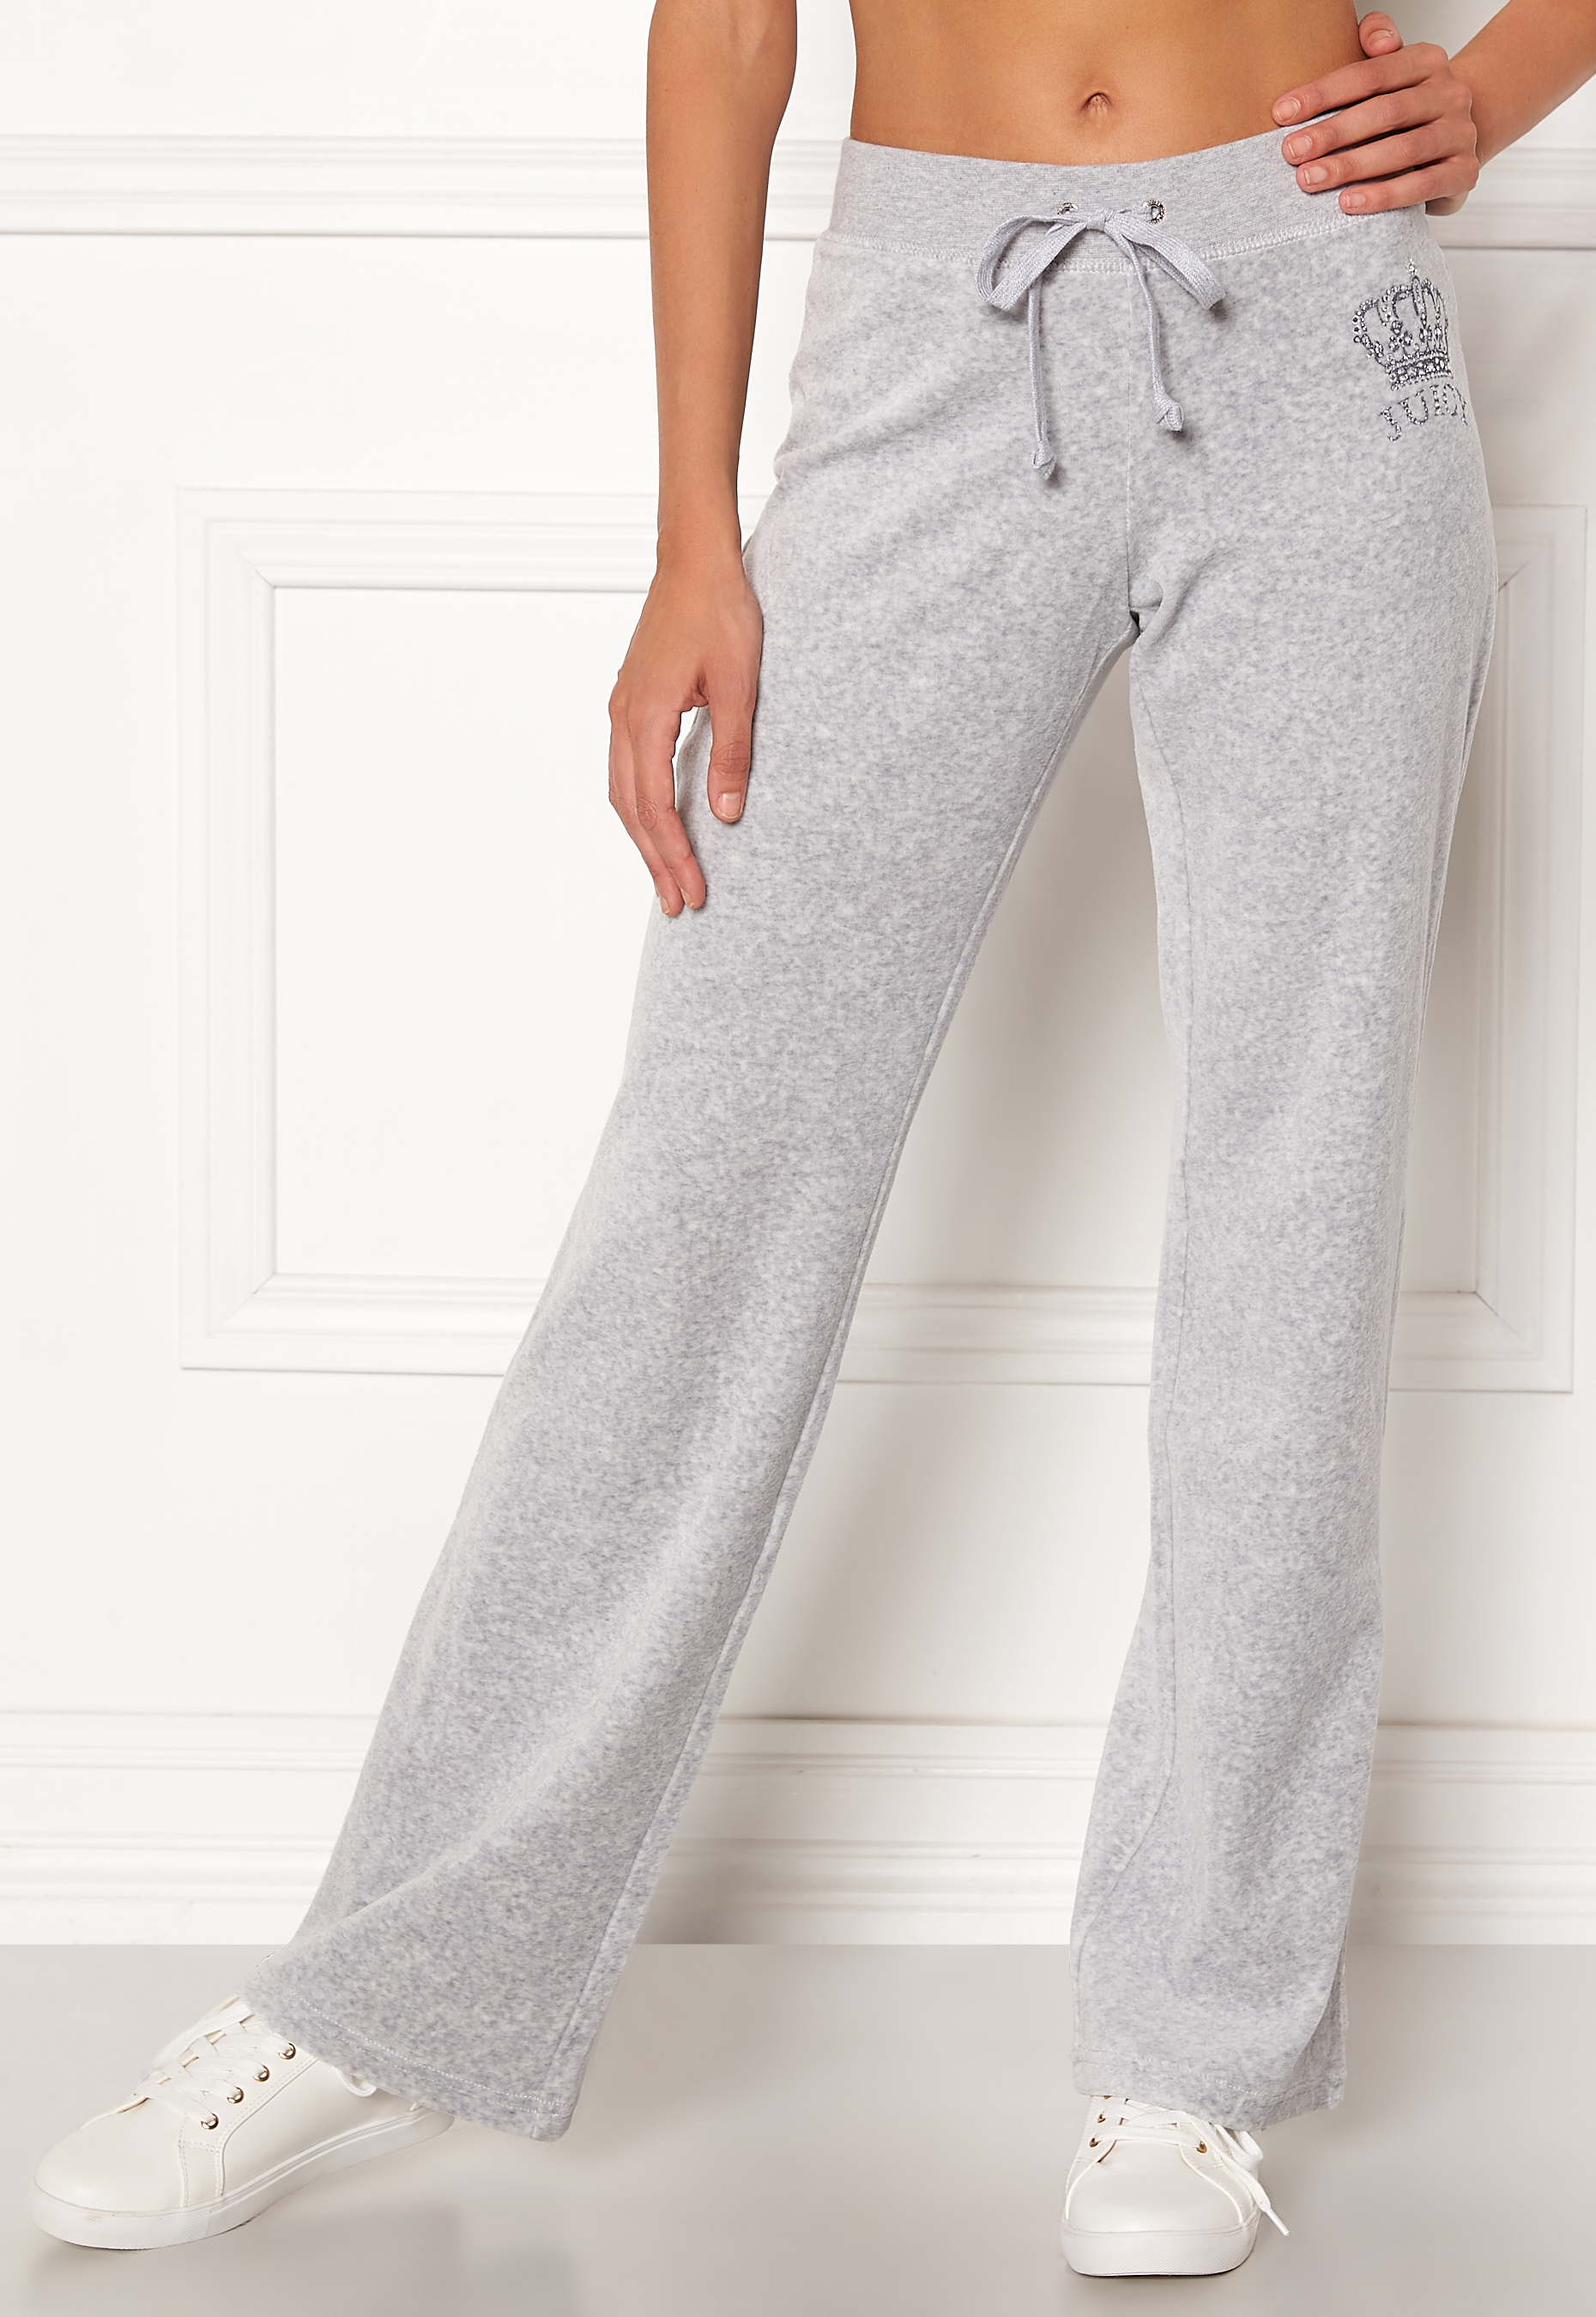 8a6b66ff4976 Juicy Couture Luxe Juicy Crown Pant Silver Lining - Bubbleroom